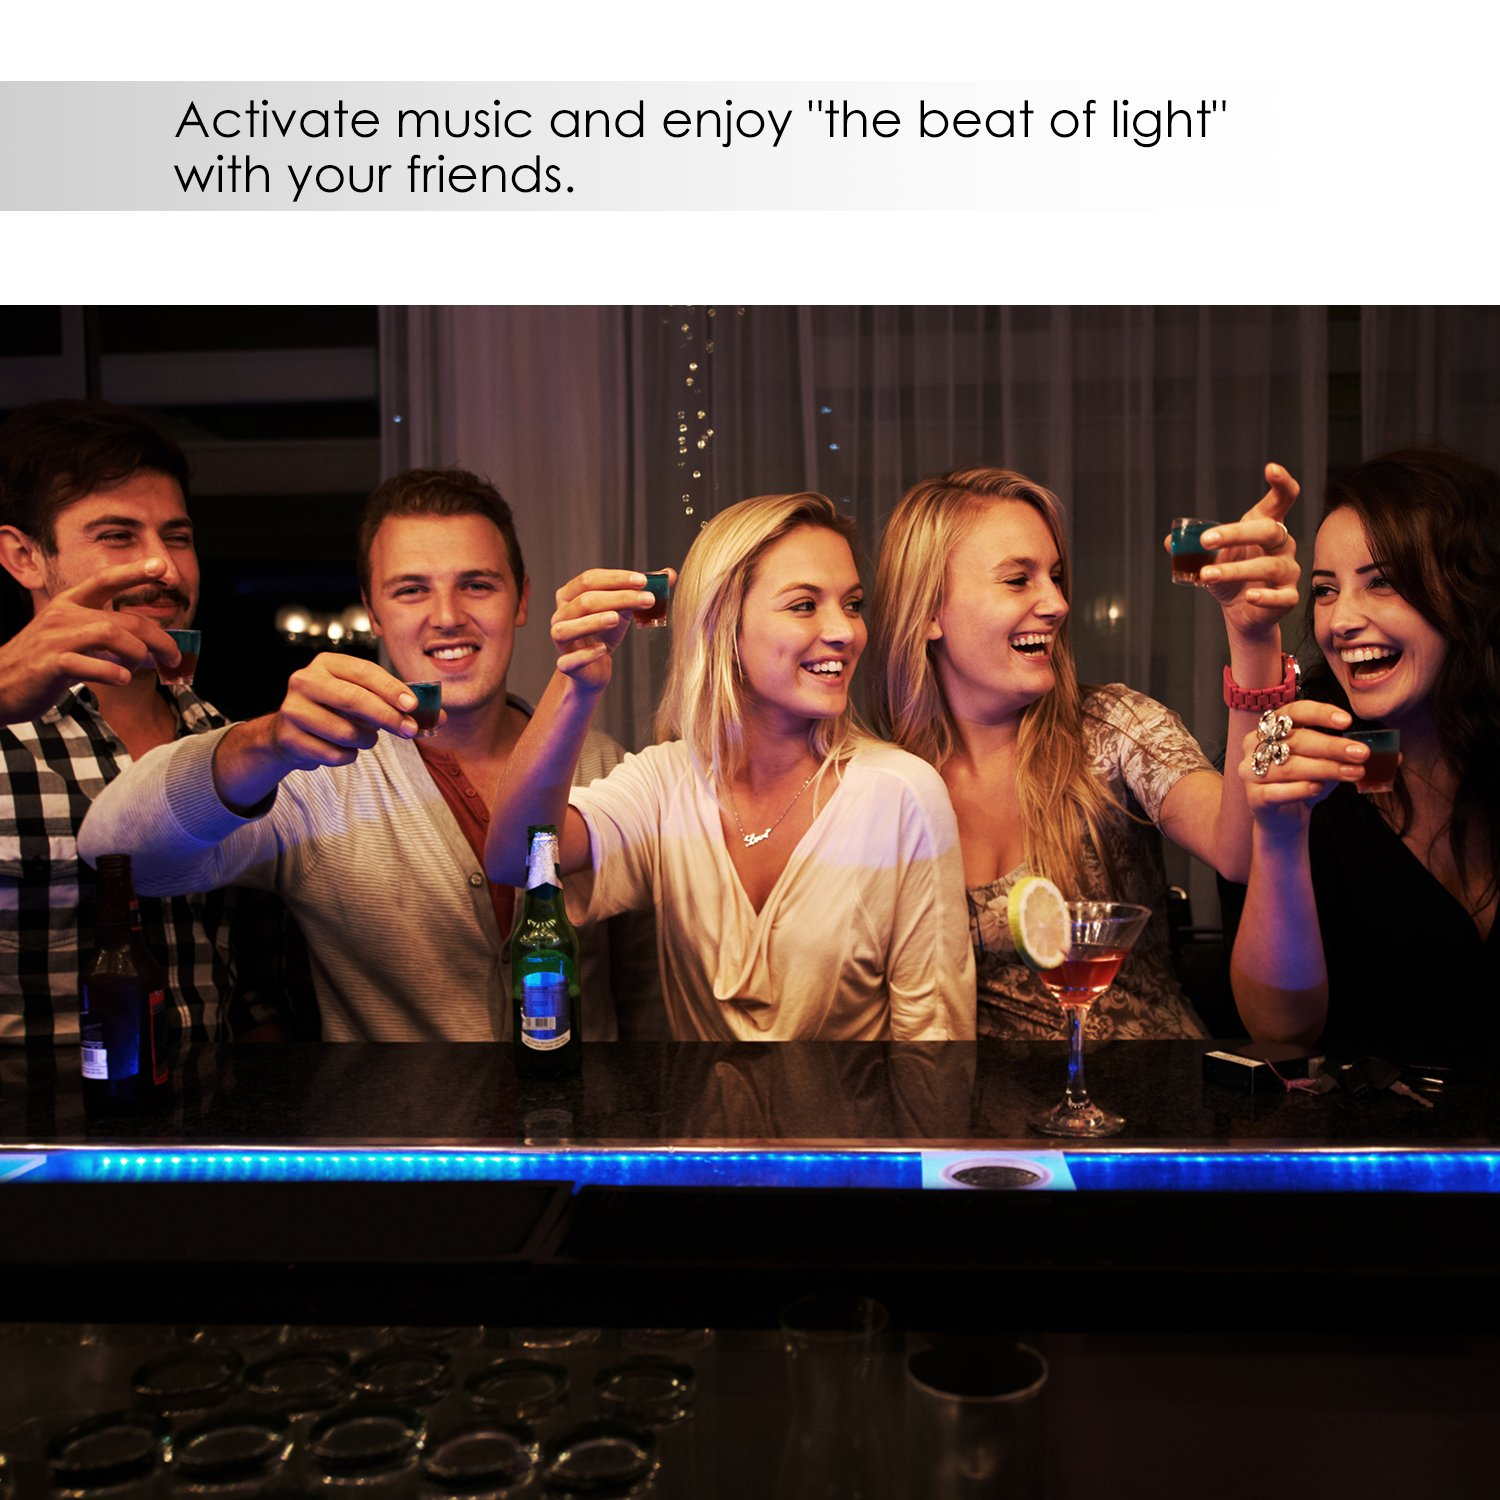 YIHONG LED Strip Lights Compatible with Alexa Google Home 16.4ft 150LEDs RGB Wifi LED Light Strip Non Waterproof LED Tape Ribbon by YIHONG (Image #4)